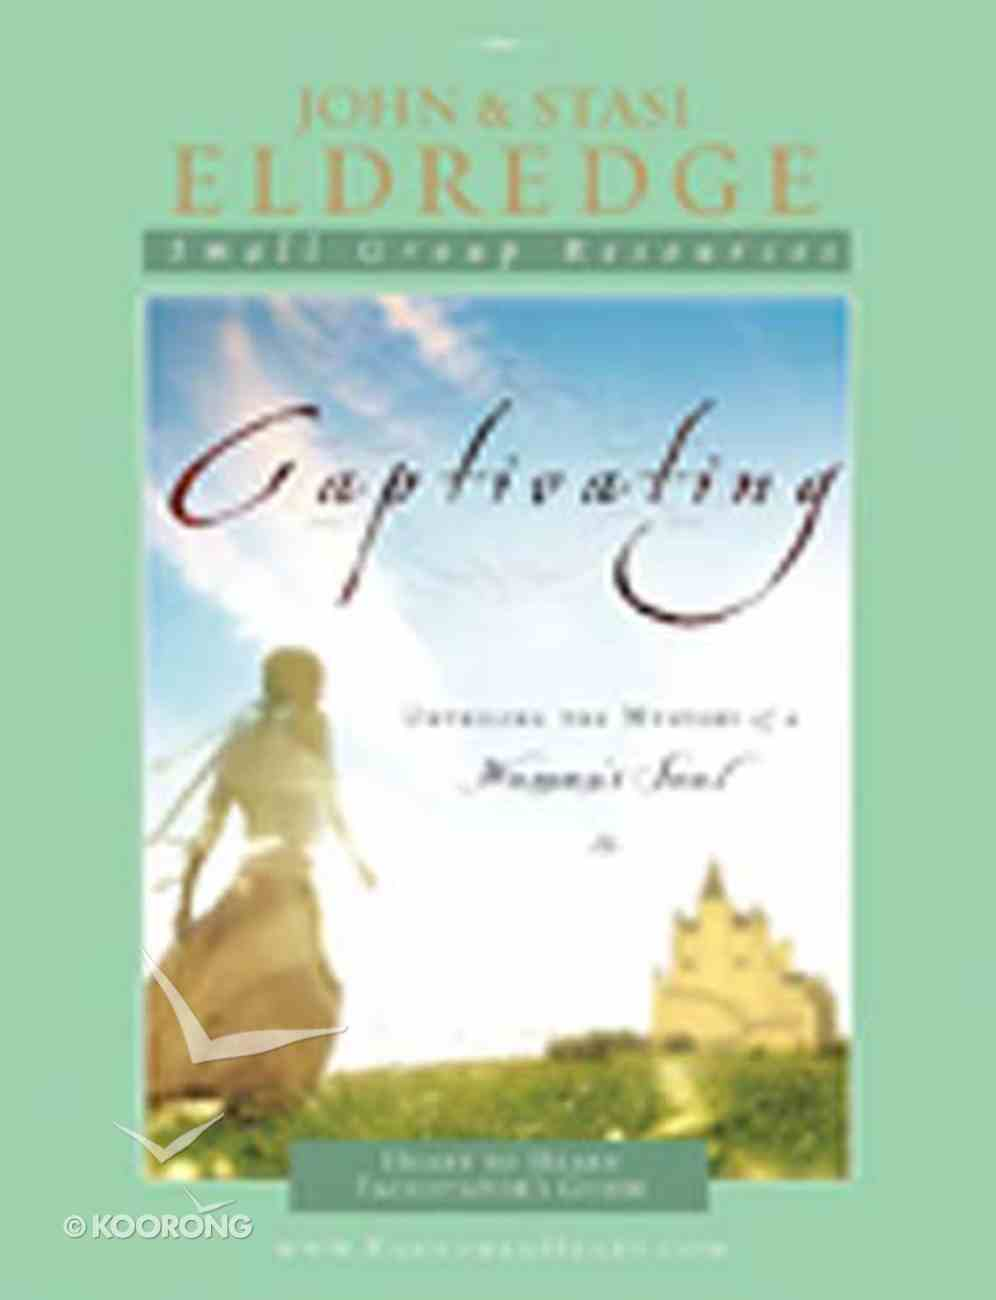 Captivating: Heart to Heart (Leader's Guide) Paperback